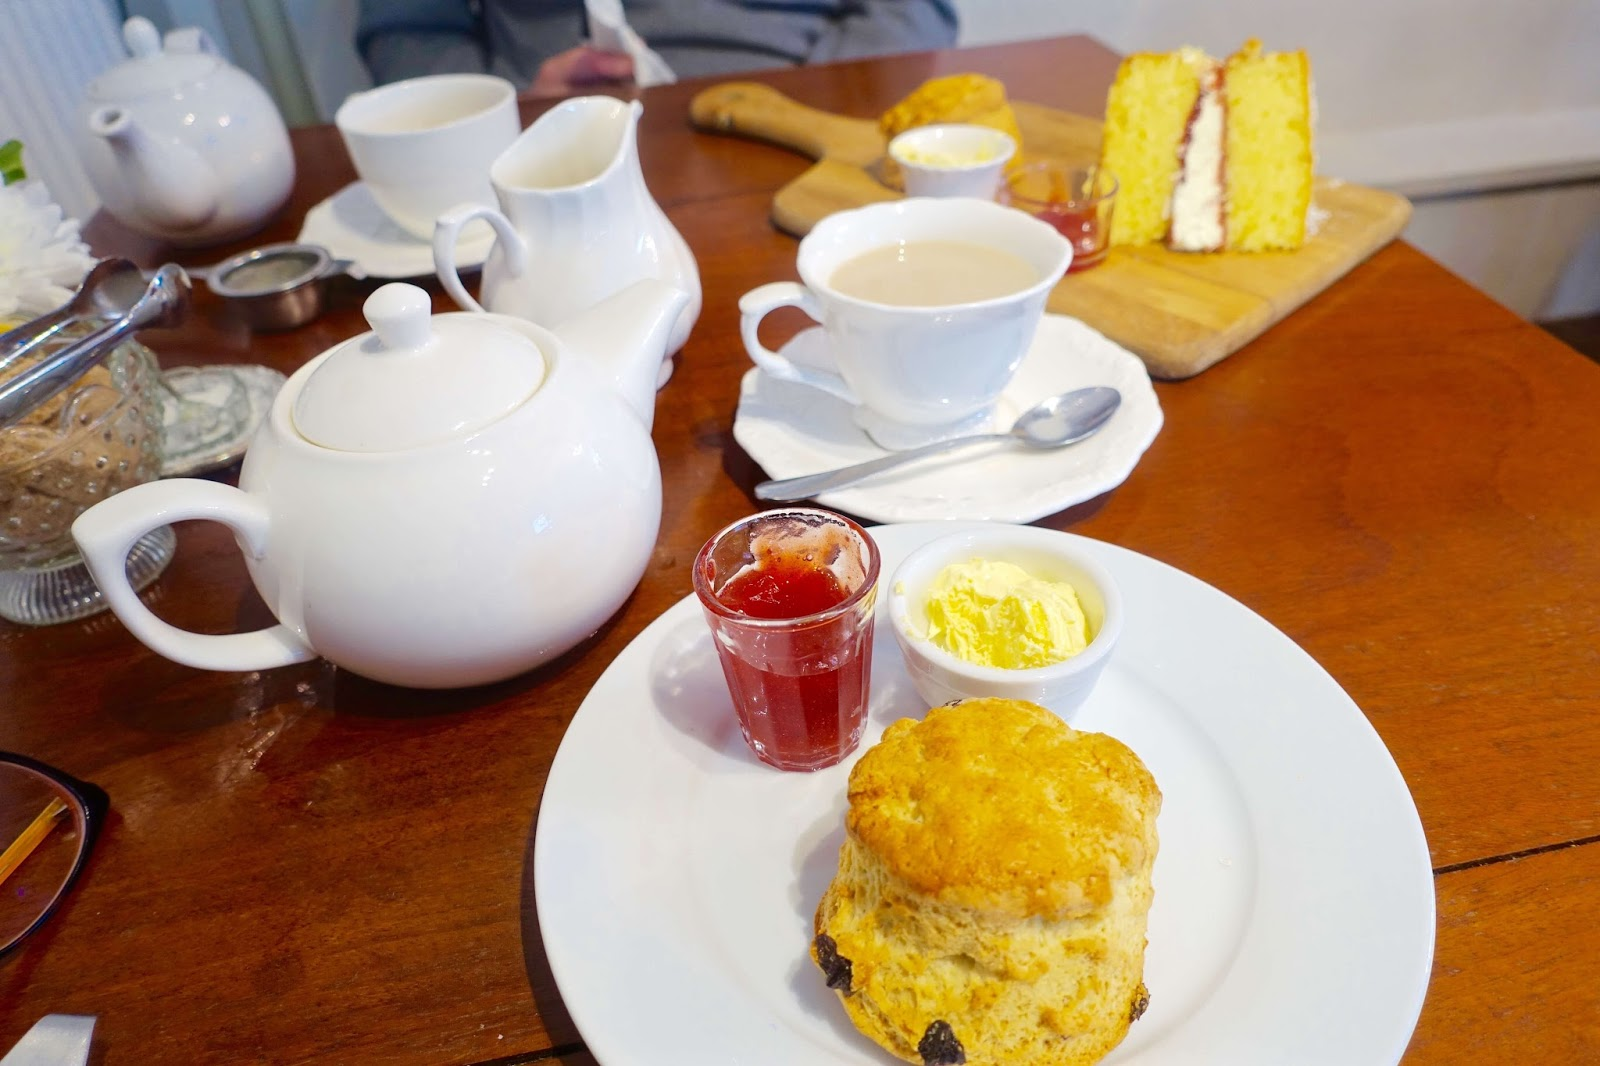 Cream tea at Bourton-on-the-water in the Cotswolds